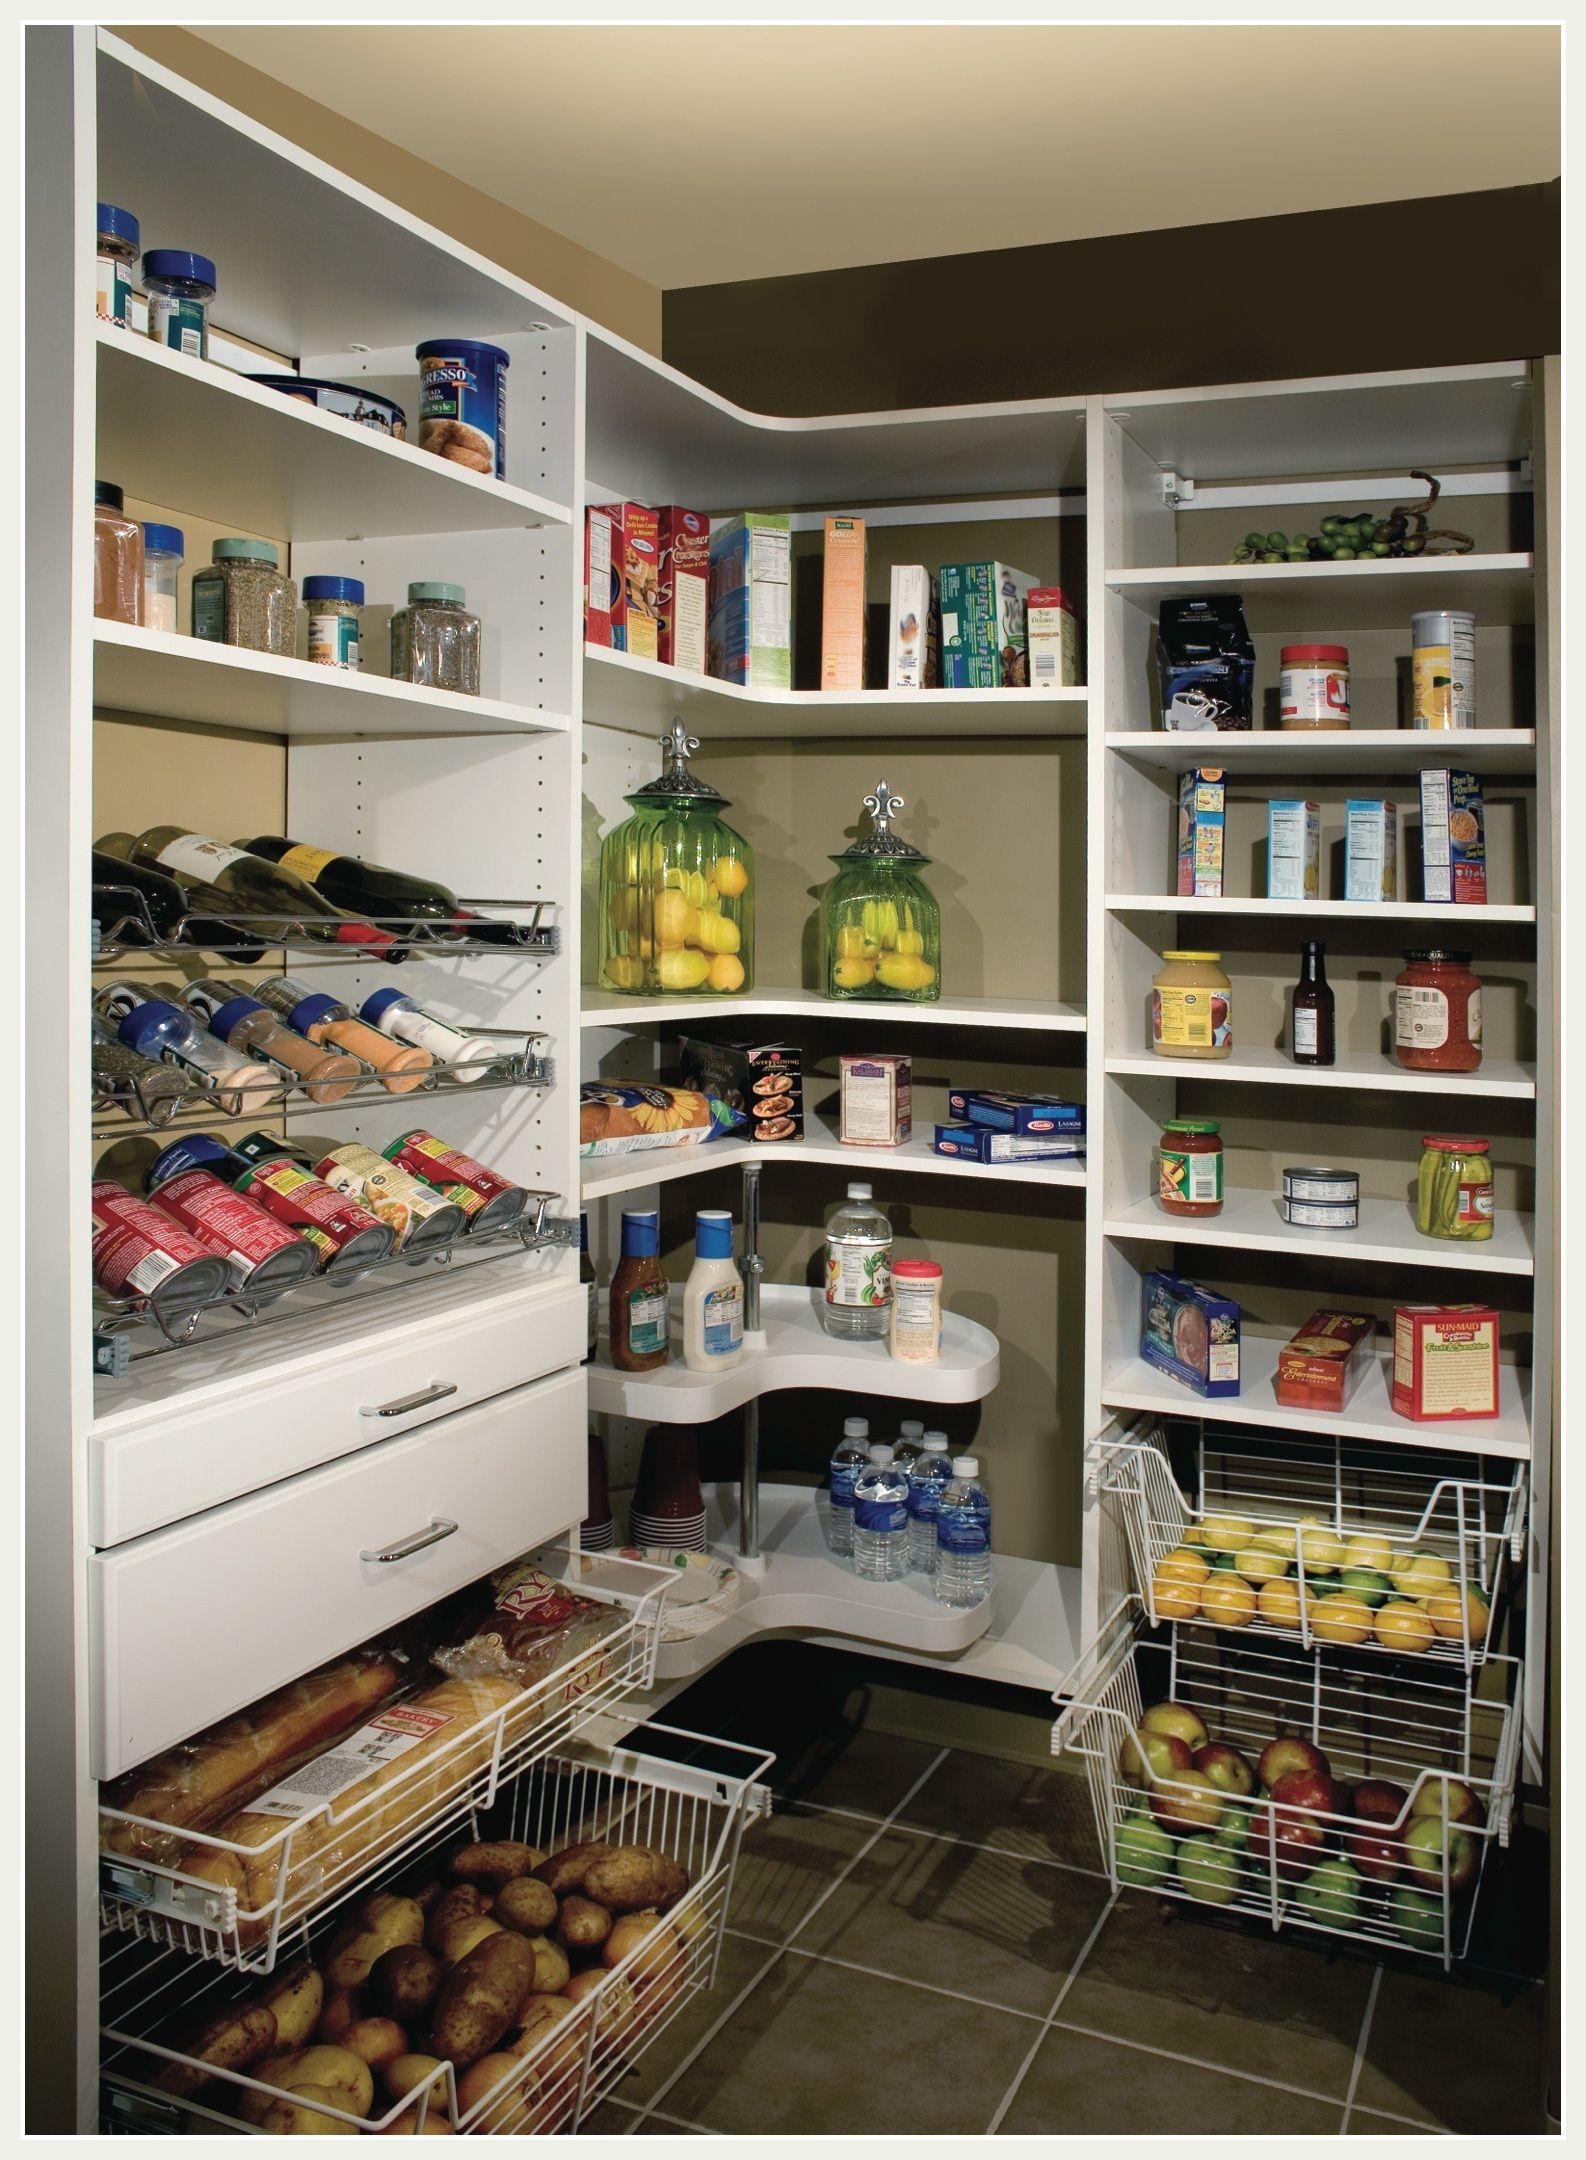 Turn Your Cluttered Pantry Into A Organized Storage Area Call